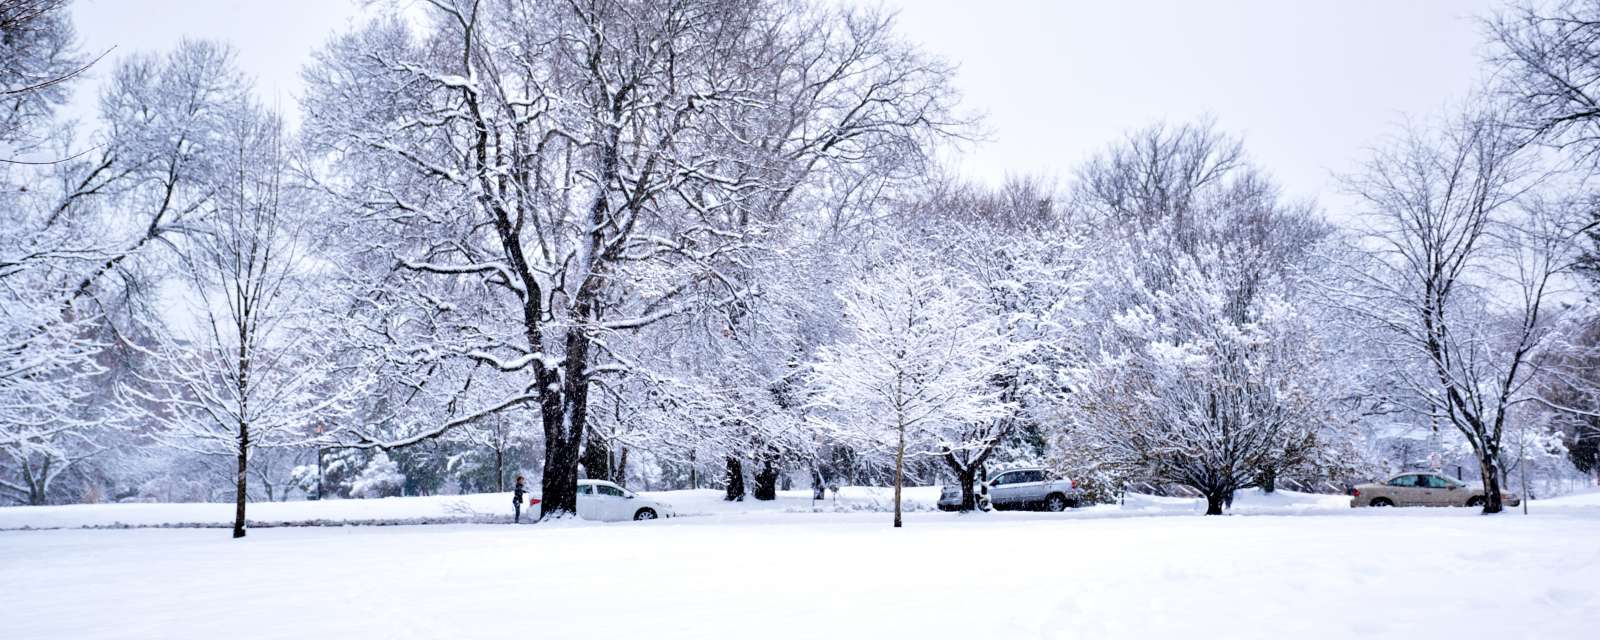 Washington Park in winter with snow